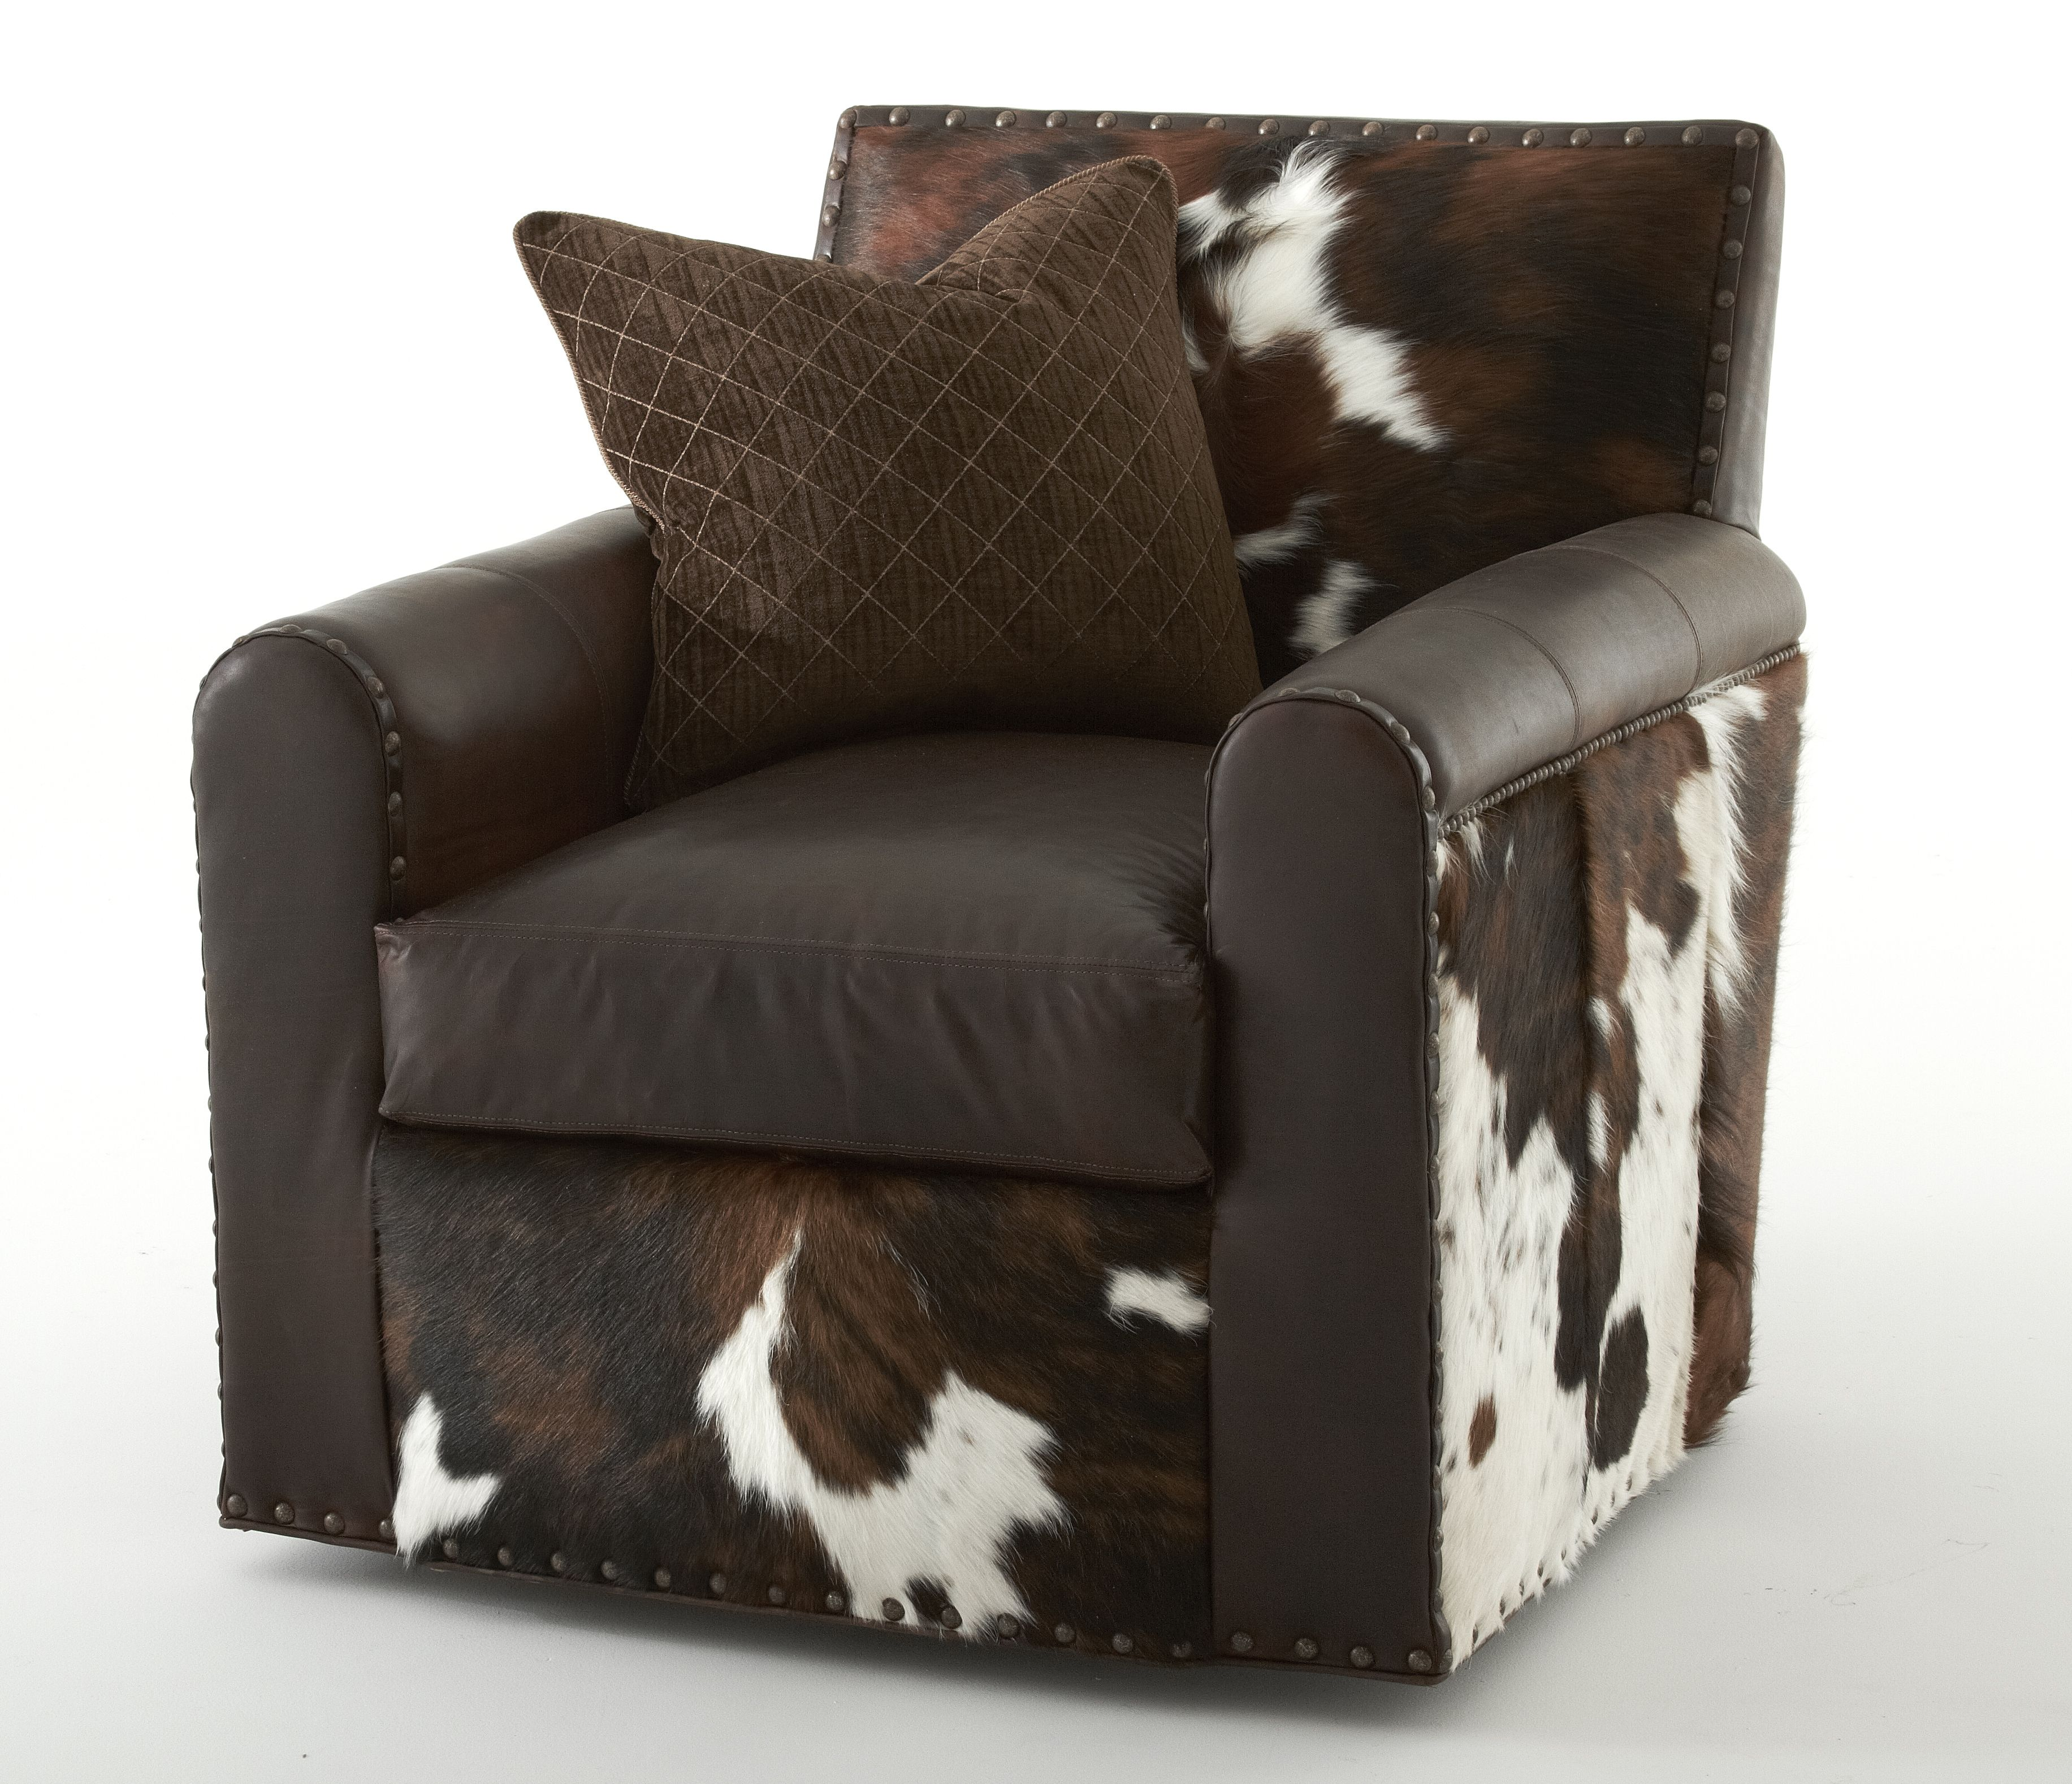 STYLE L963 CHAIR IN COWBOY COCOA Right This Rustic Swivel Chair Is Shown In Pull Up